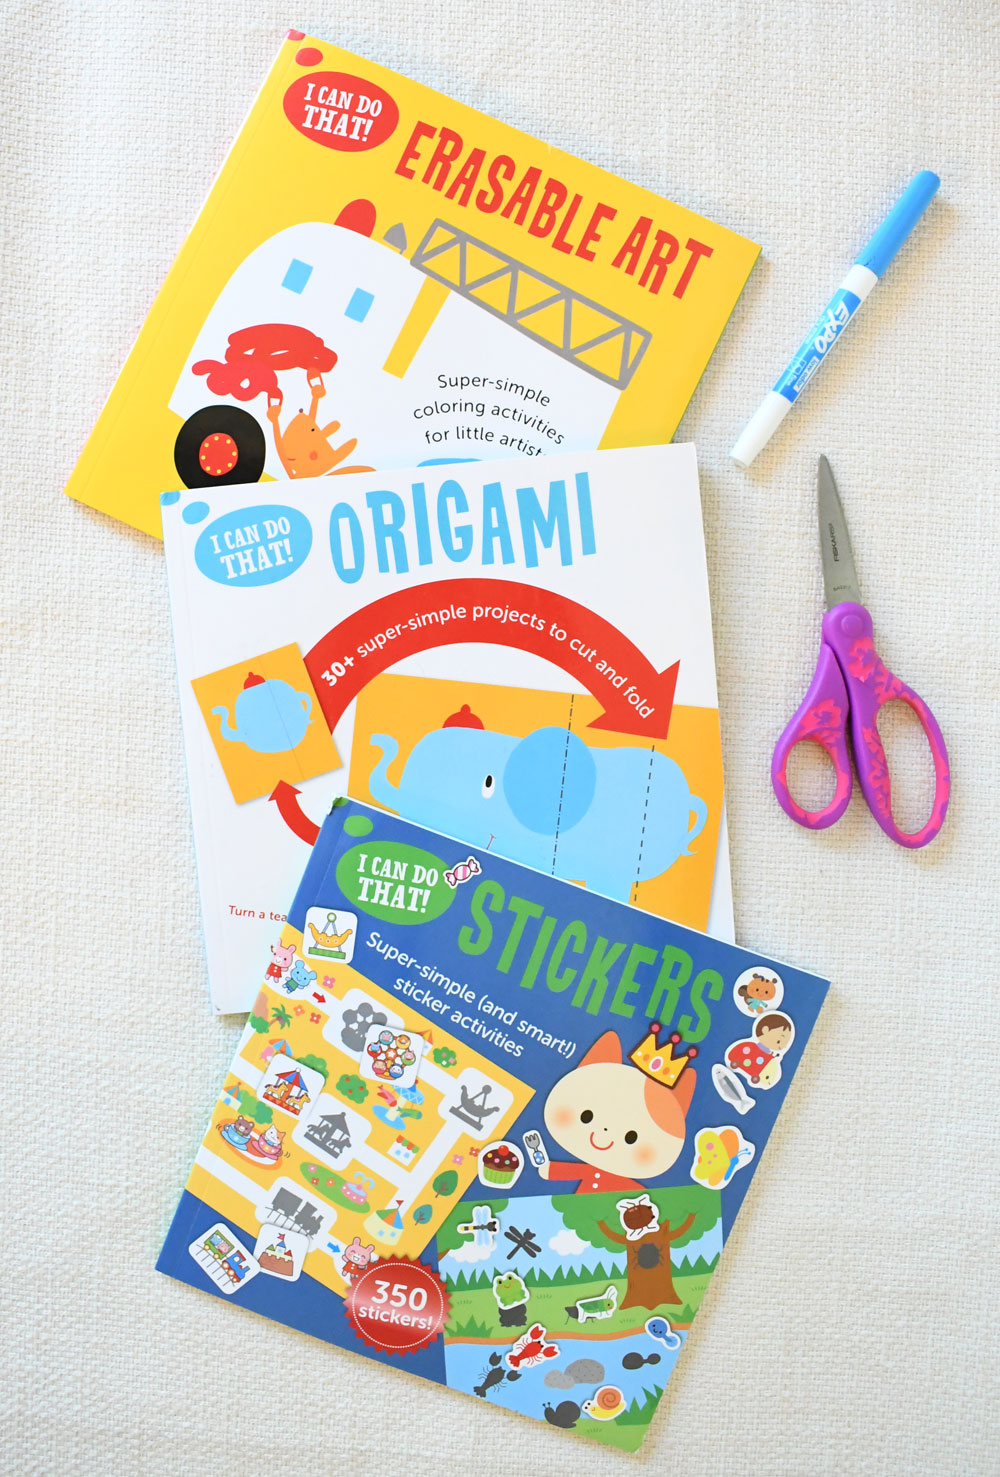 I Can Do That! interactive kids workbooks